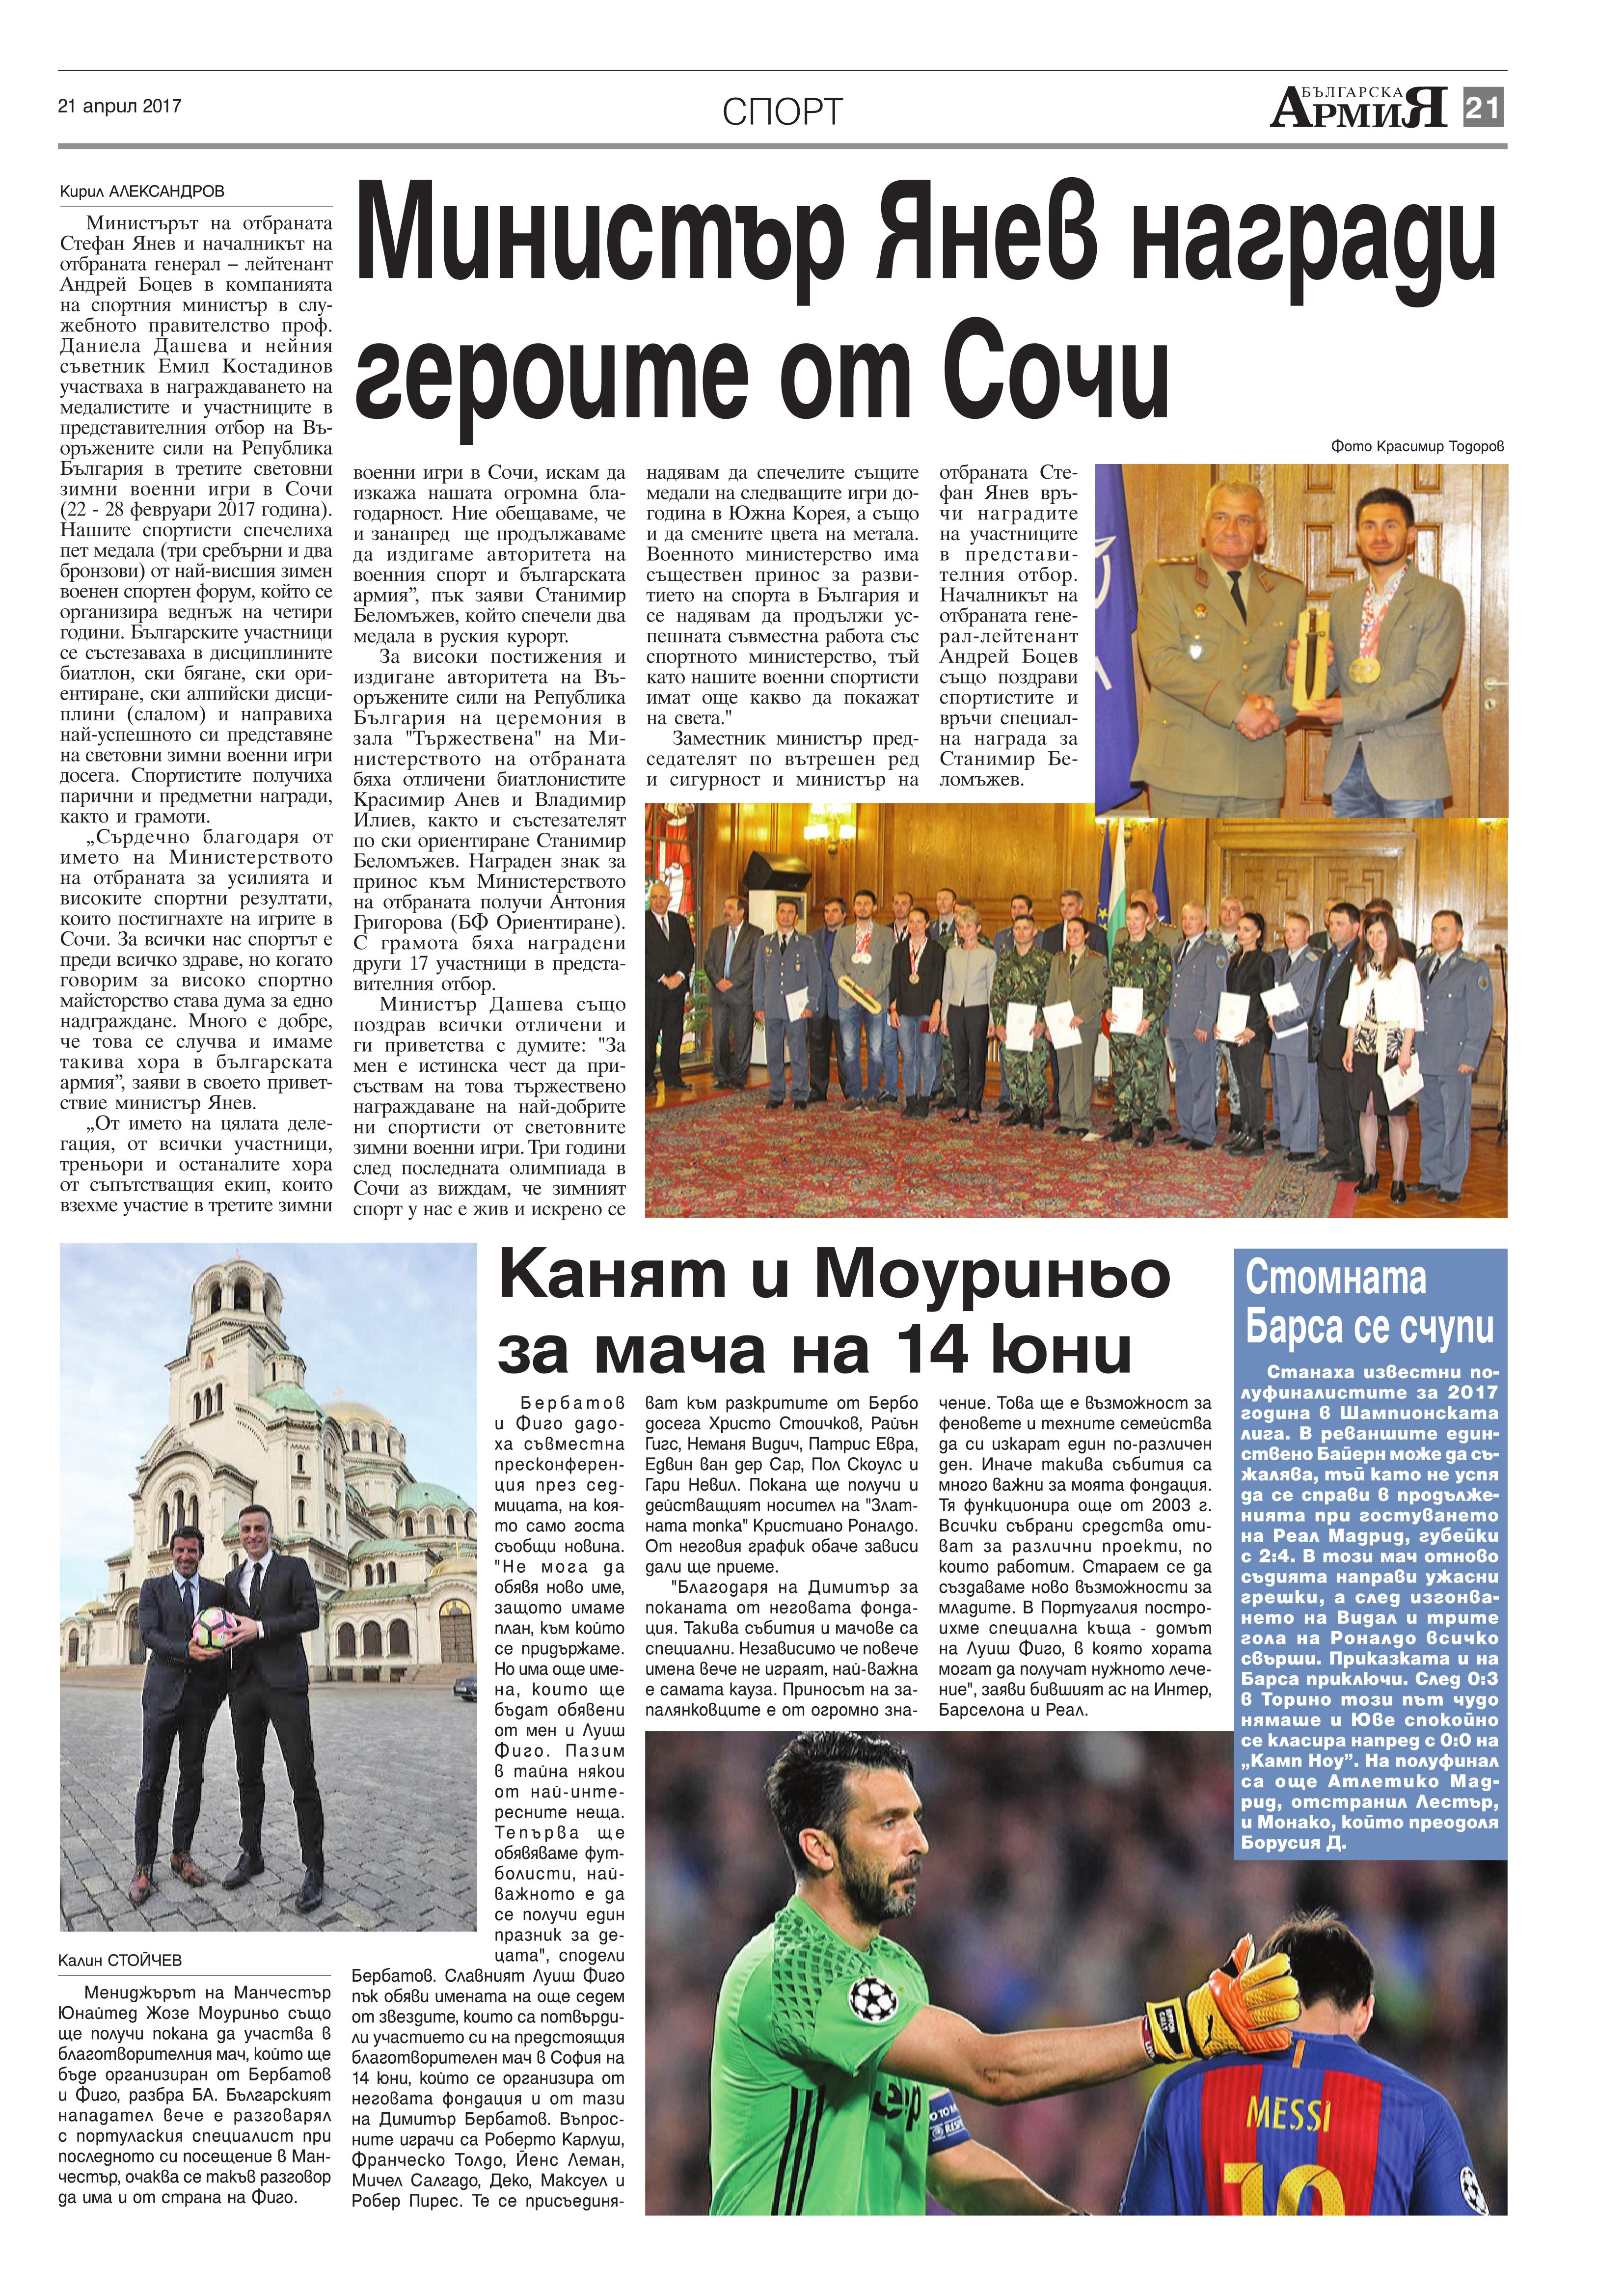 https://www.armymedia.bg/wp-content/uploads/2015/06/21.page1_-19.jpg